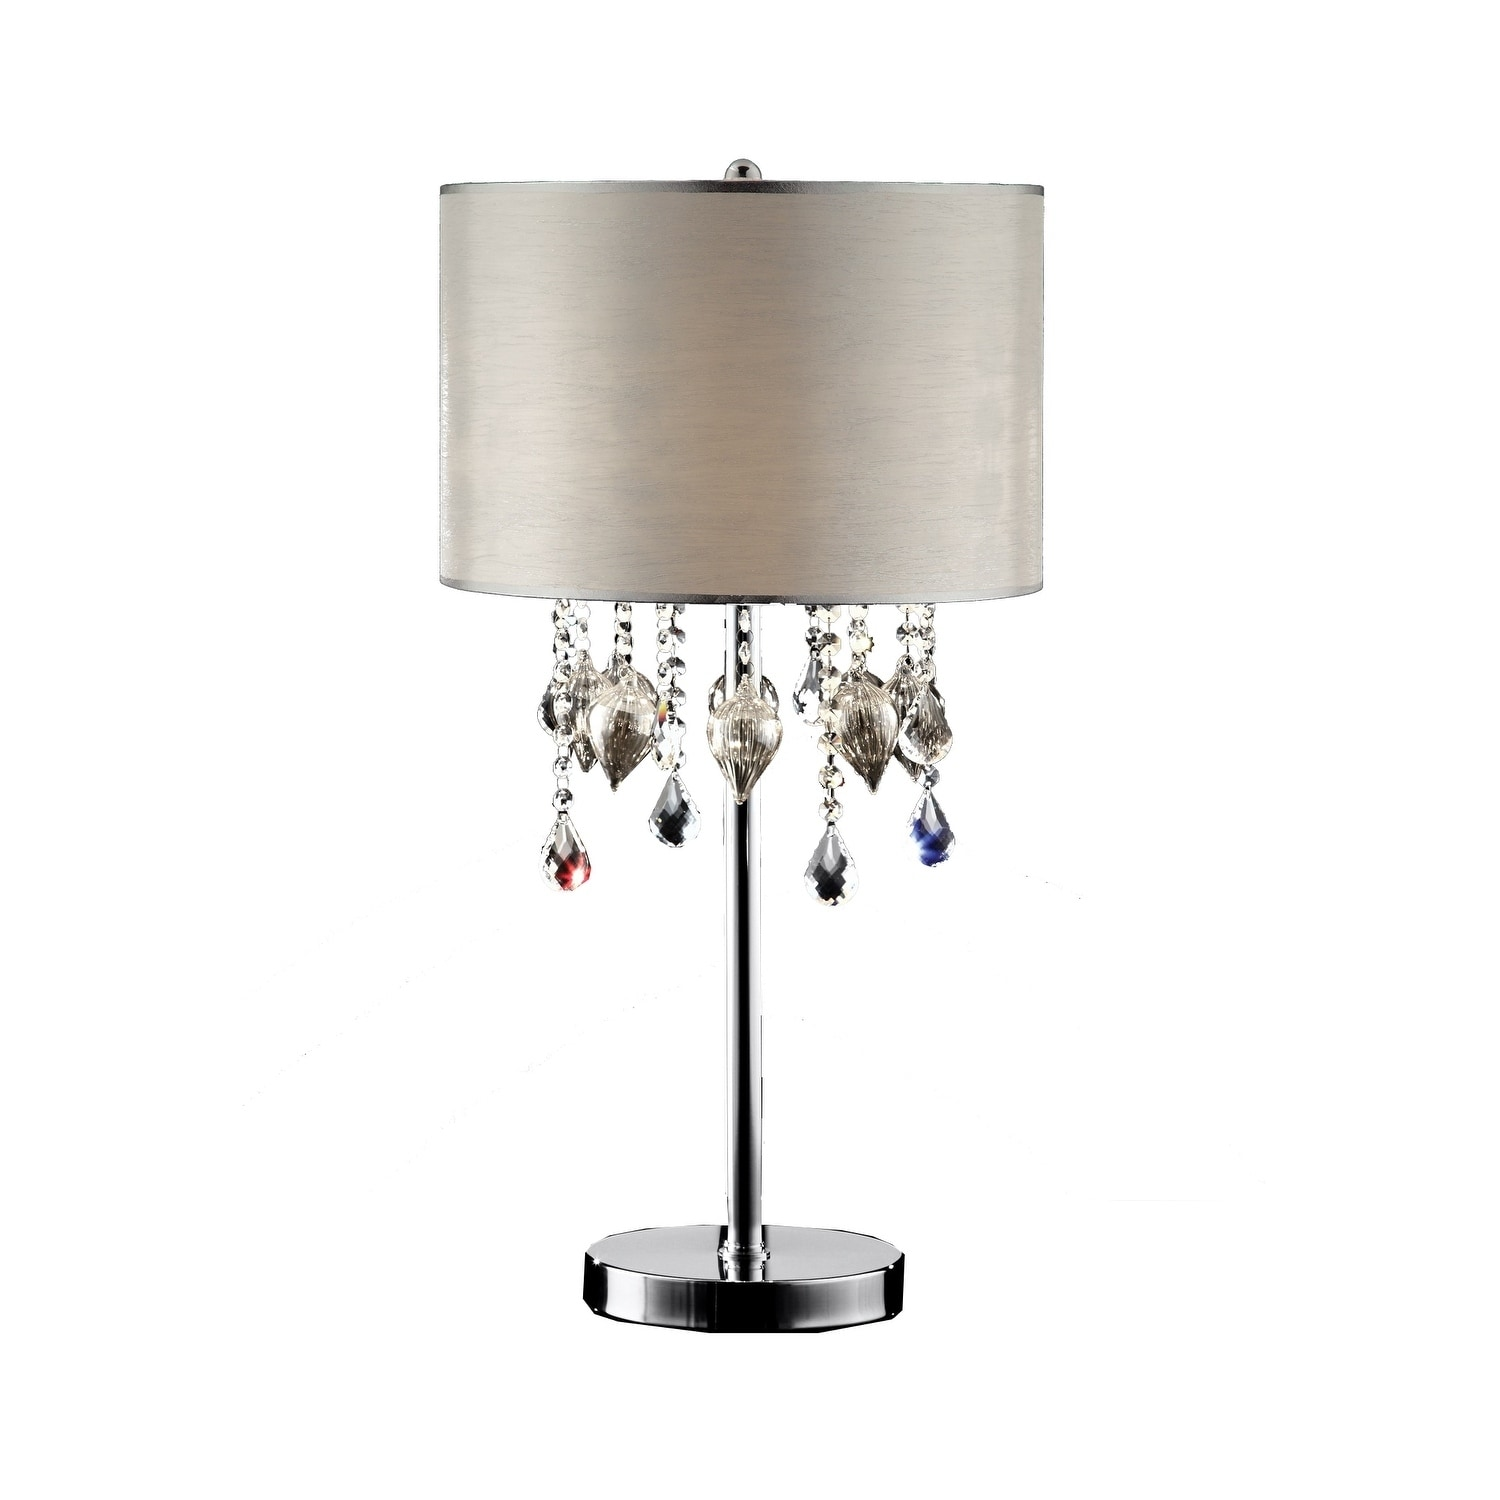 OK Lighting Drape Crystal Peach 3-light Polished Chrome Finish Table Lamp